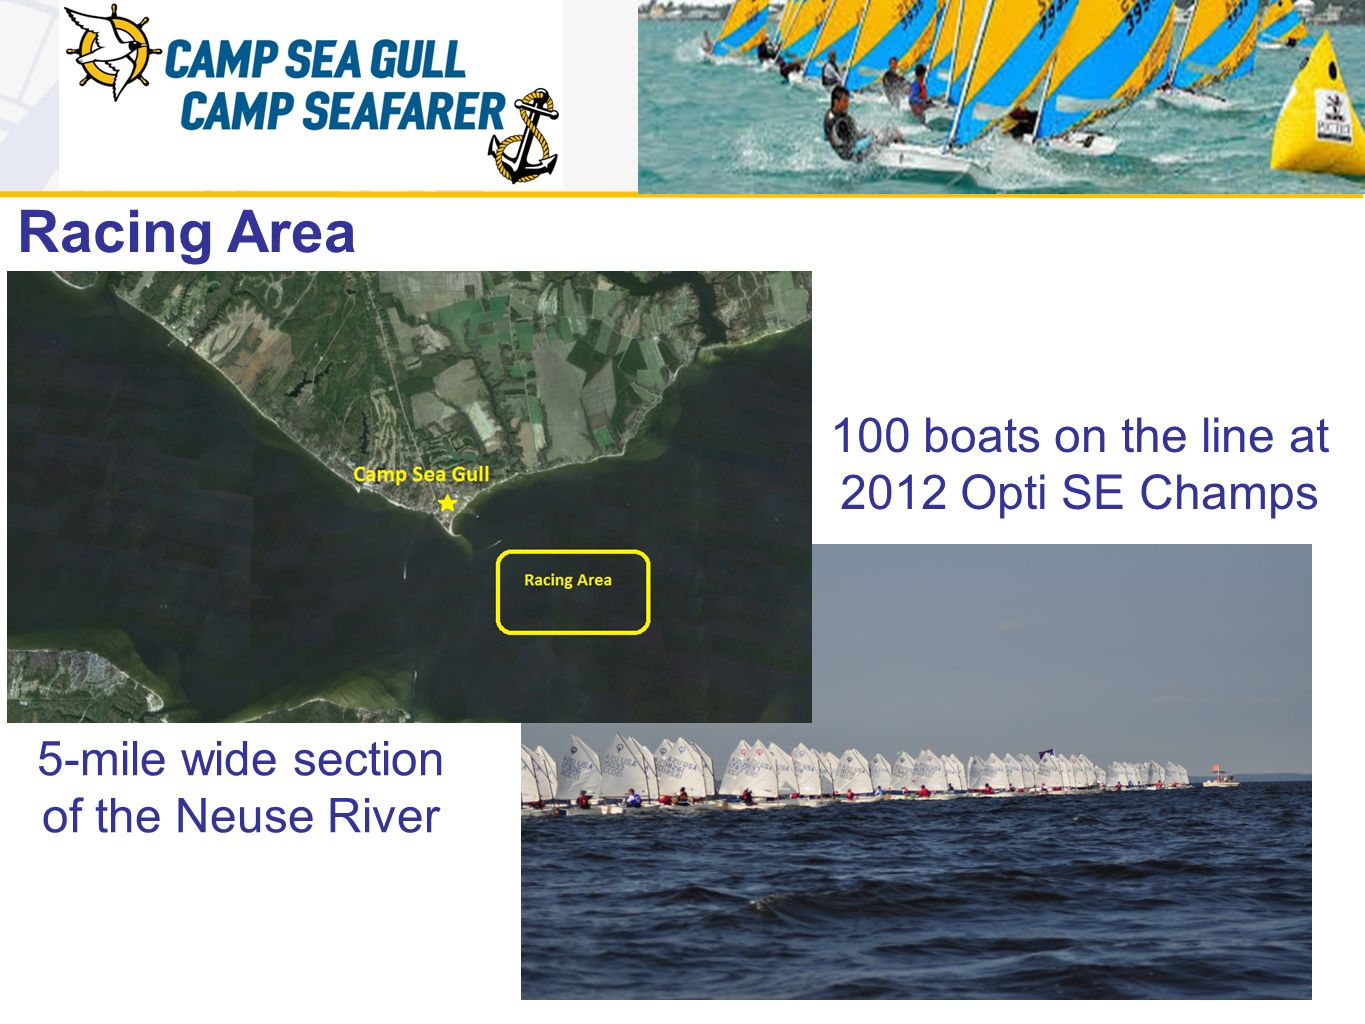 Racing Area 100 boats on the line at 2012 Opti SE Champs